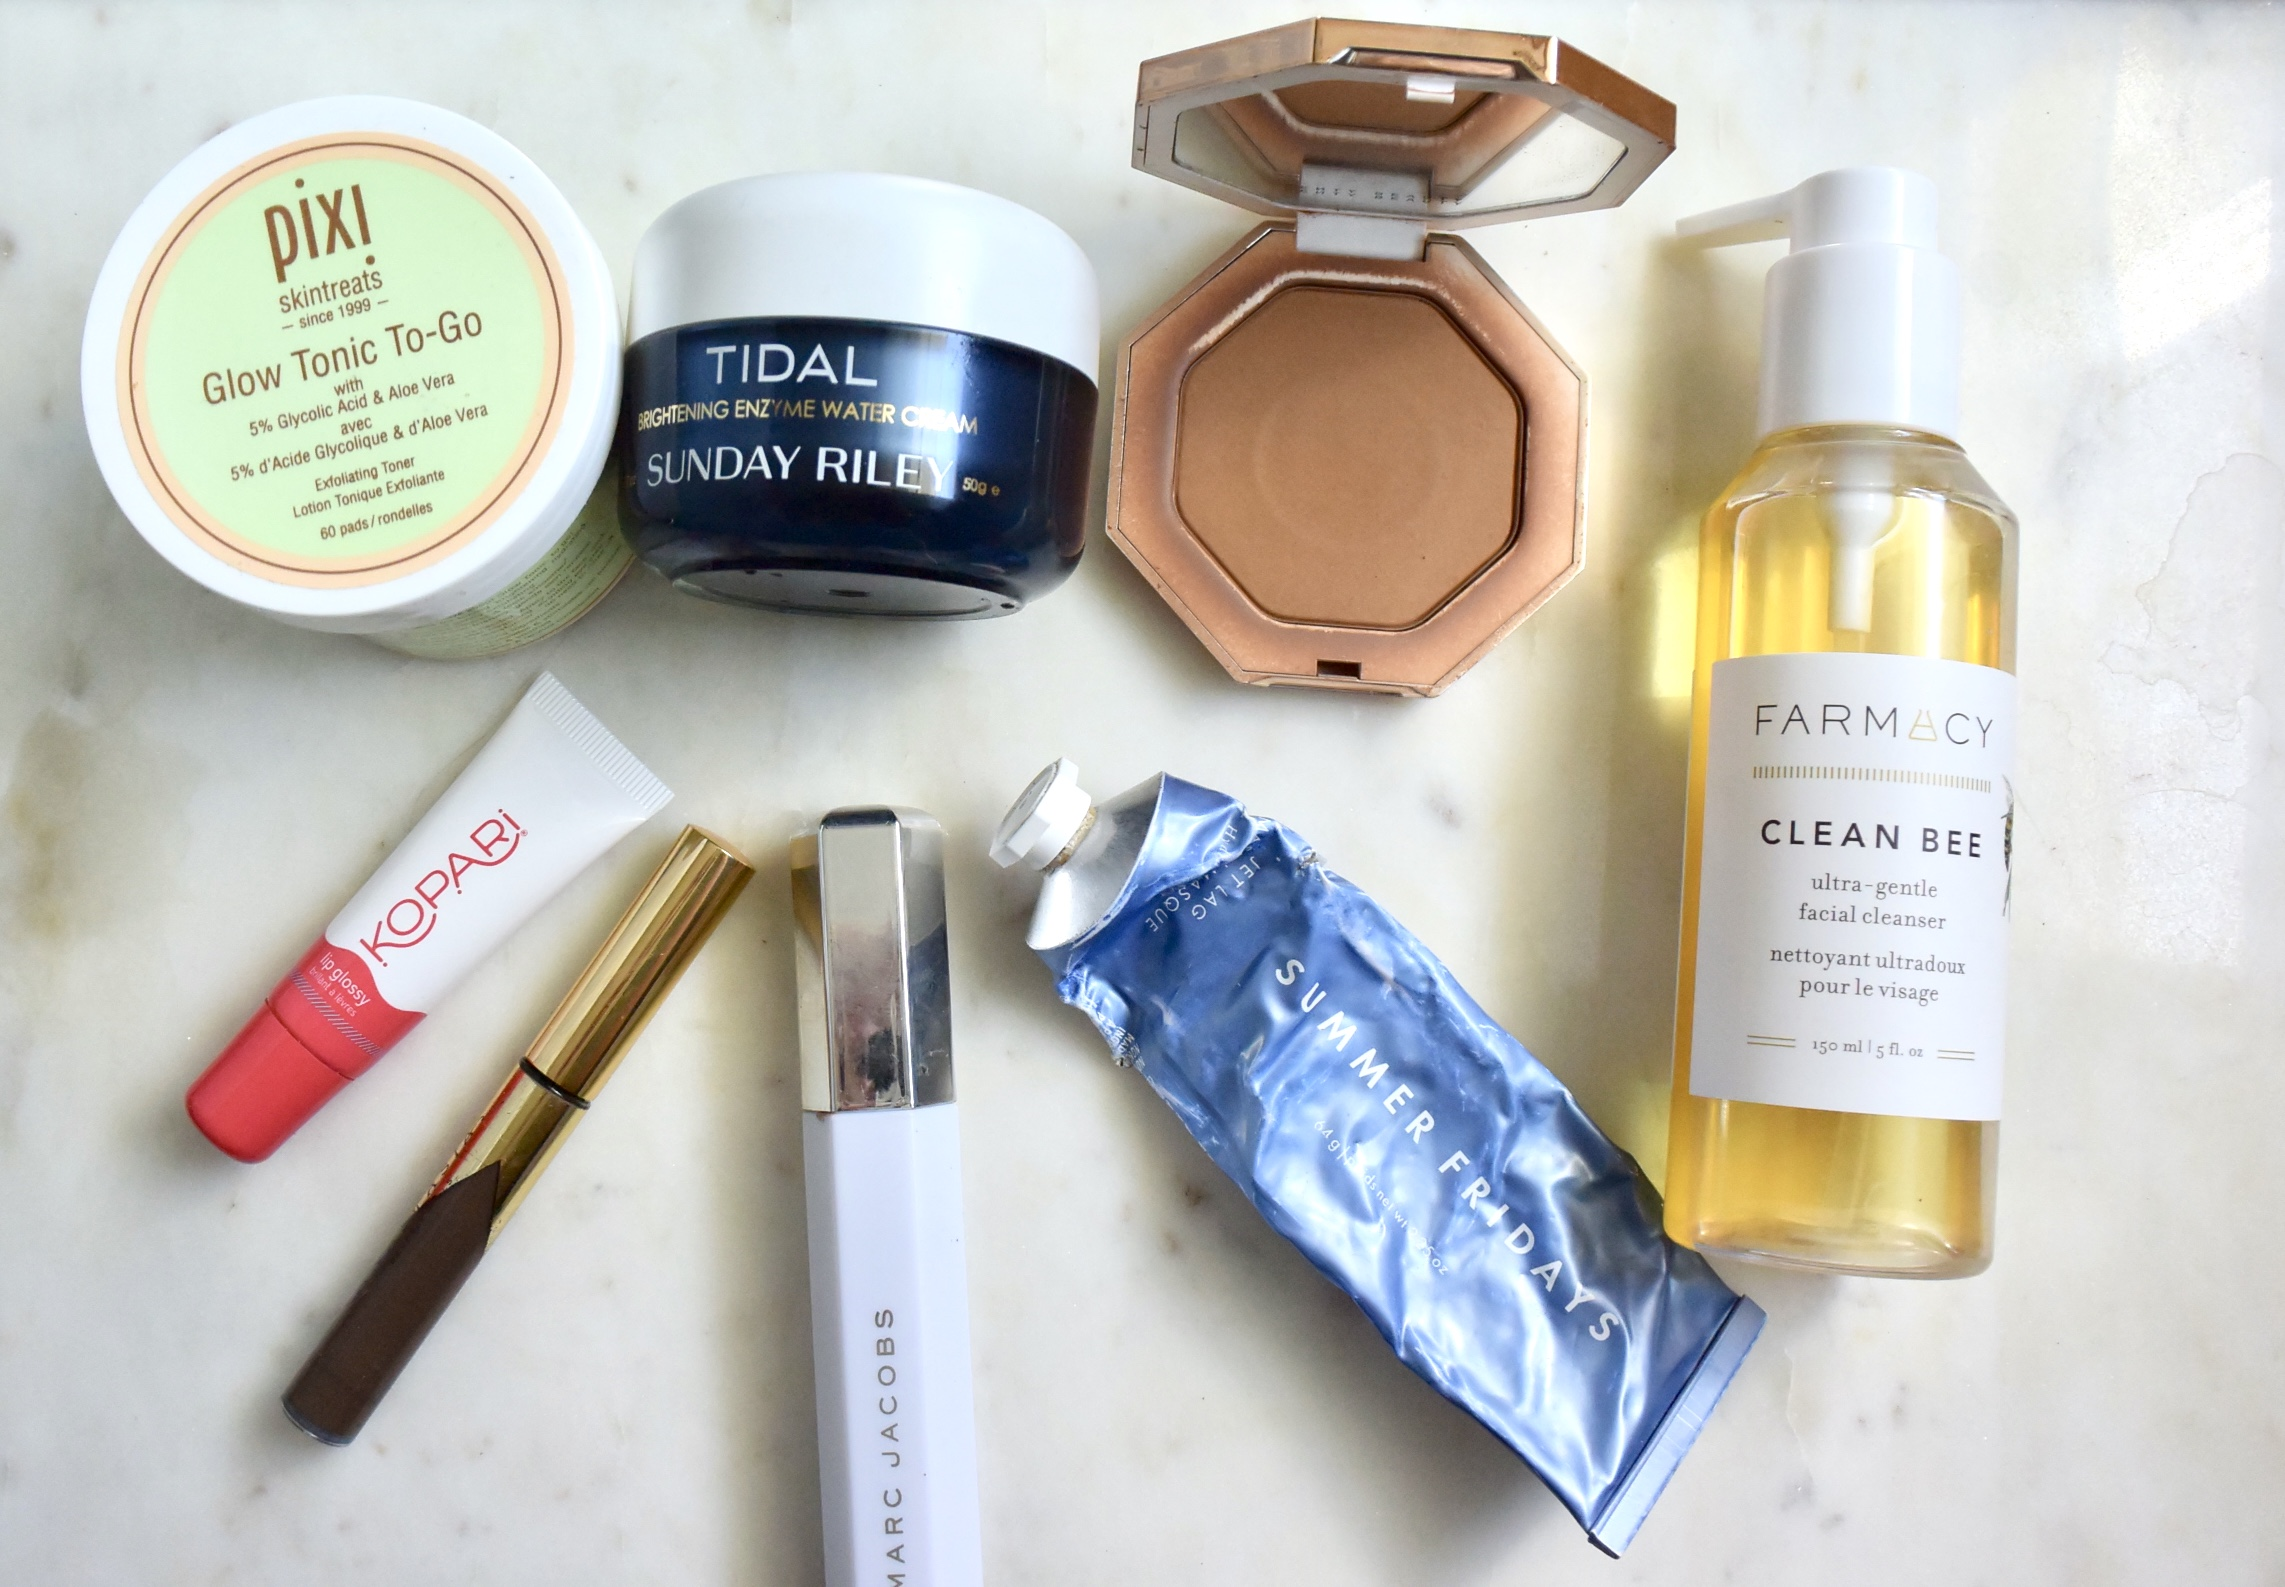 Things I Would Repurchase | Makeup | Skincare | Beauty